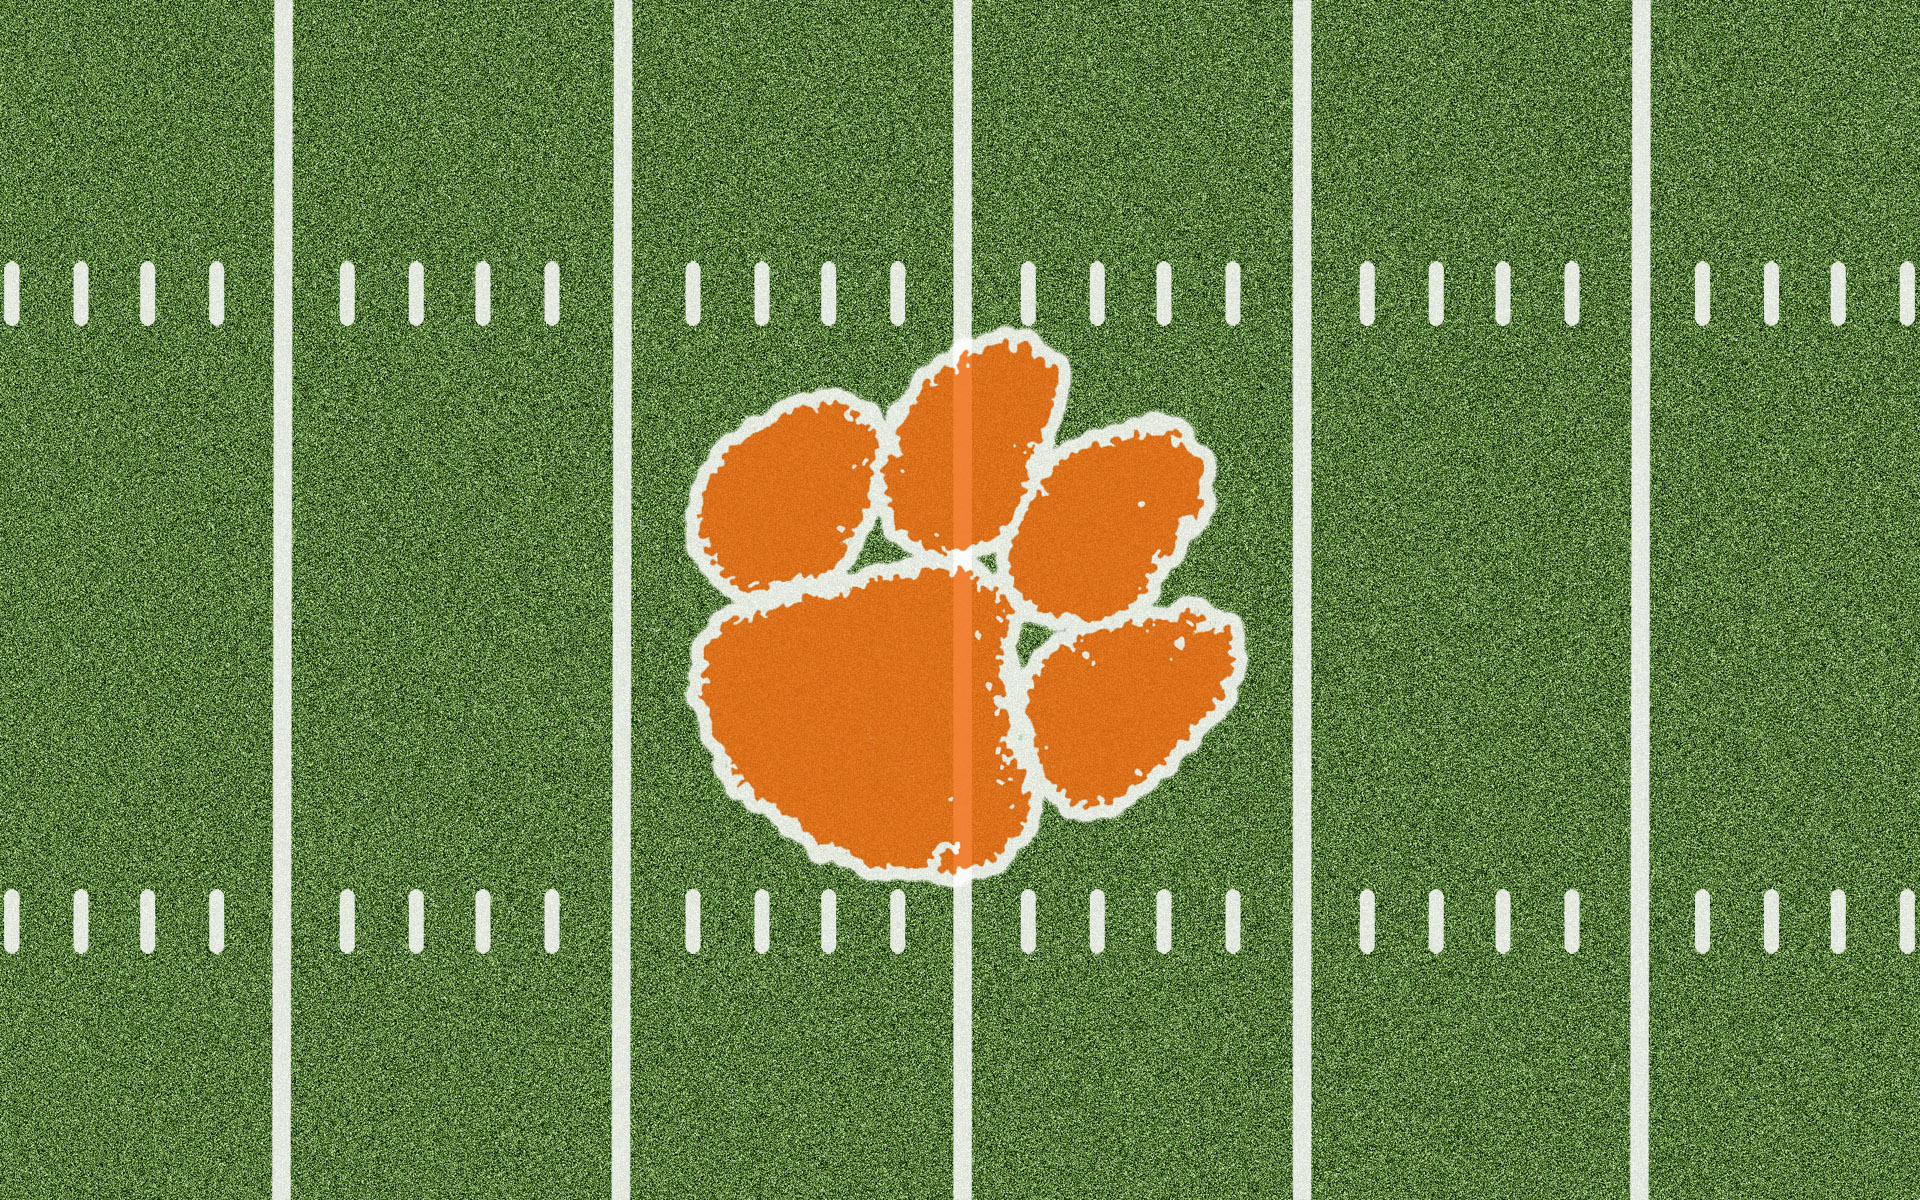 Clemson Tigers Wallpaper Sf Wallpaper